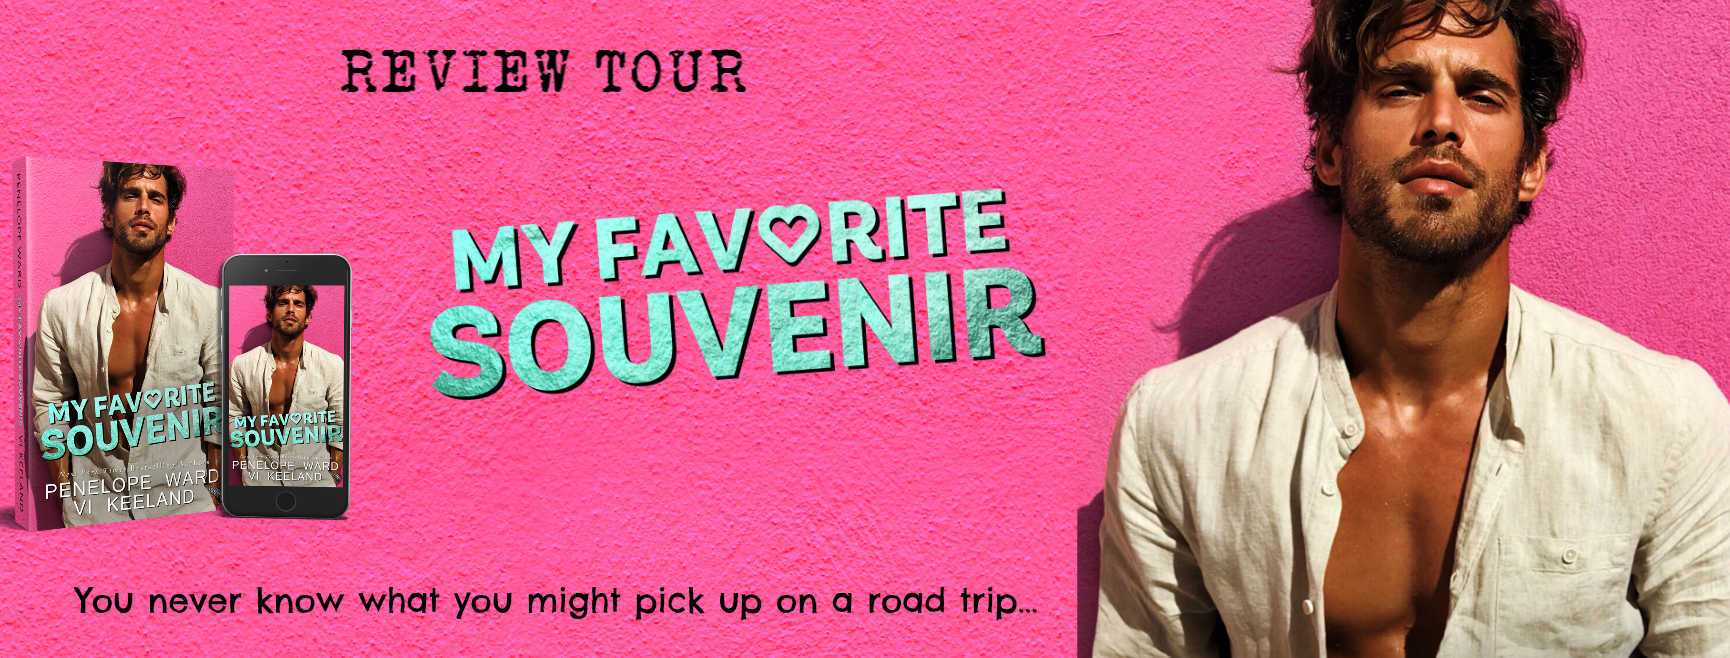 Blog Tour & Review: My Favorite Souvenir by Vi Keeland and Penelope Ward